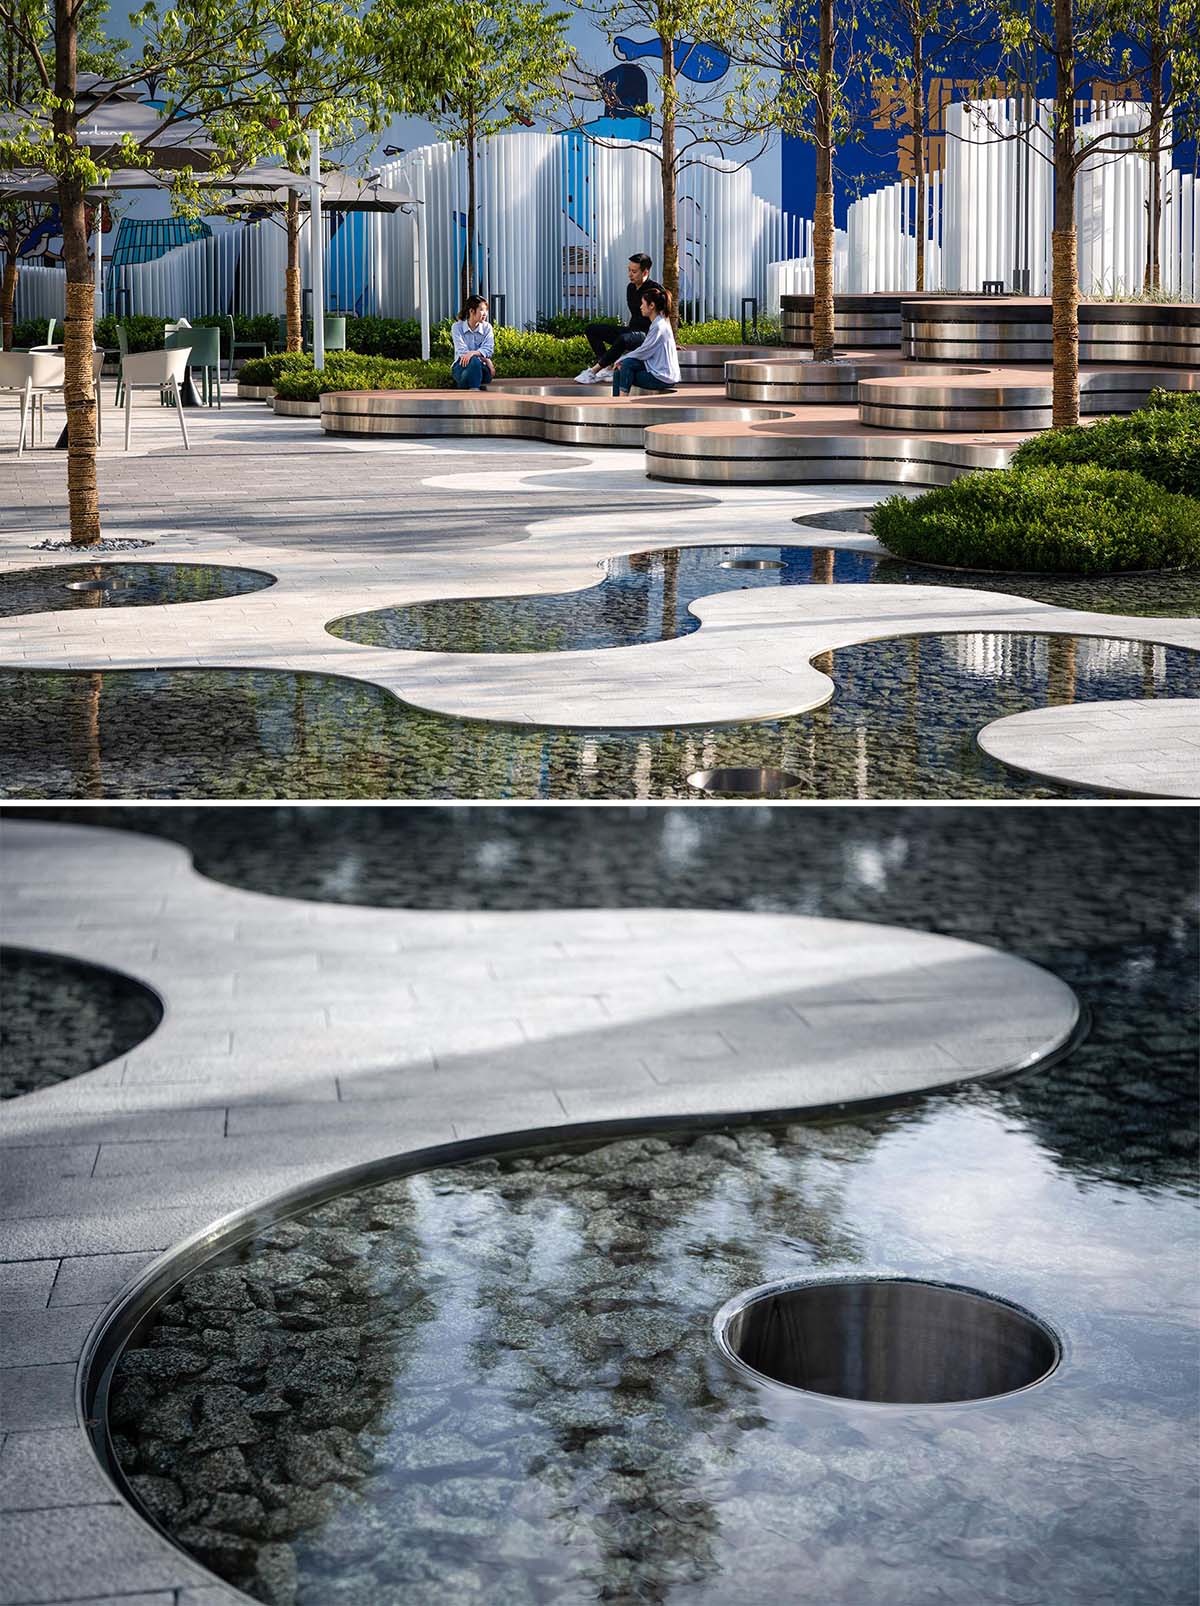 A landscaped park that includes curved tiered seating, water features, and a vertical white strip fence.